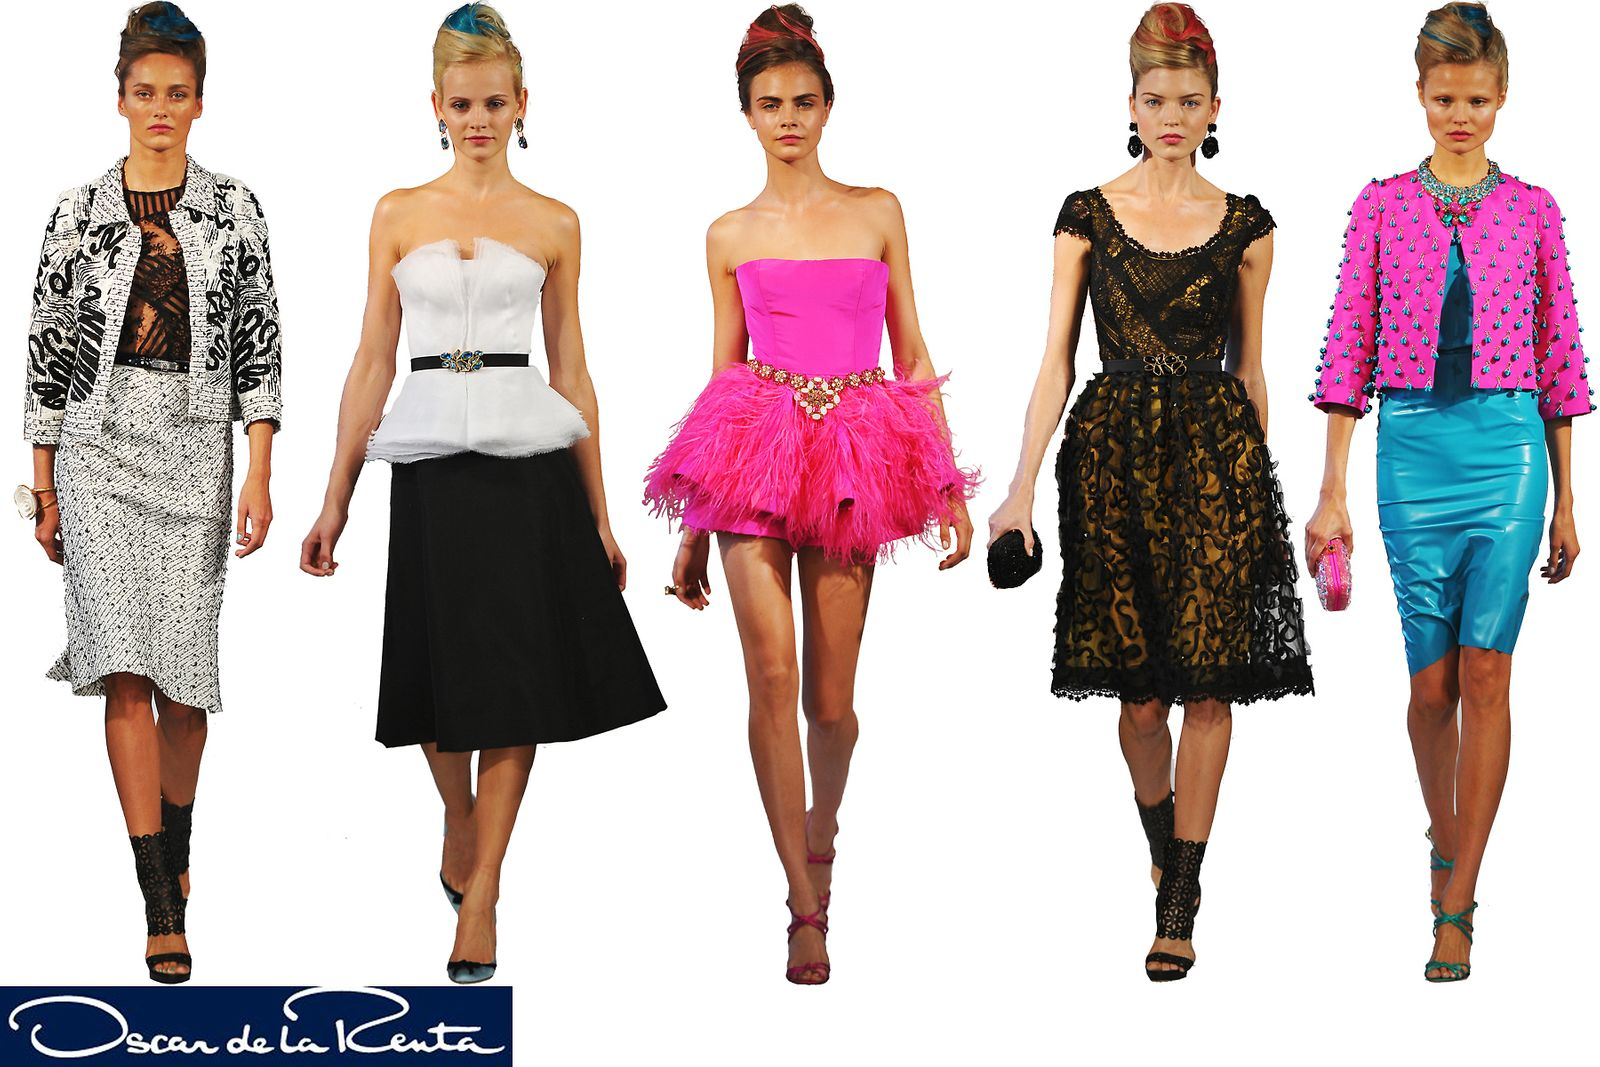 Oscar de la Renta 2013 Spring/Summer Collection